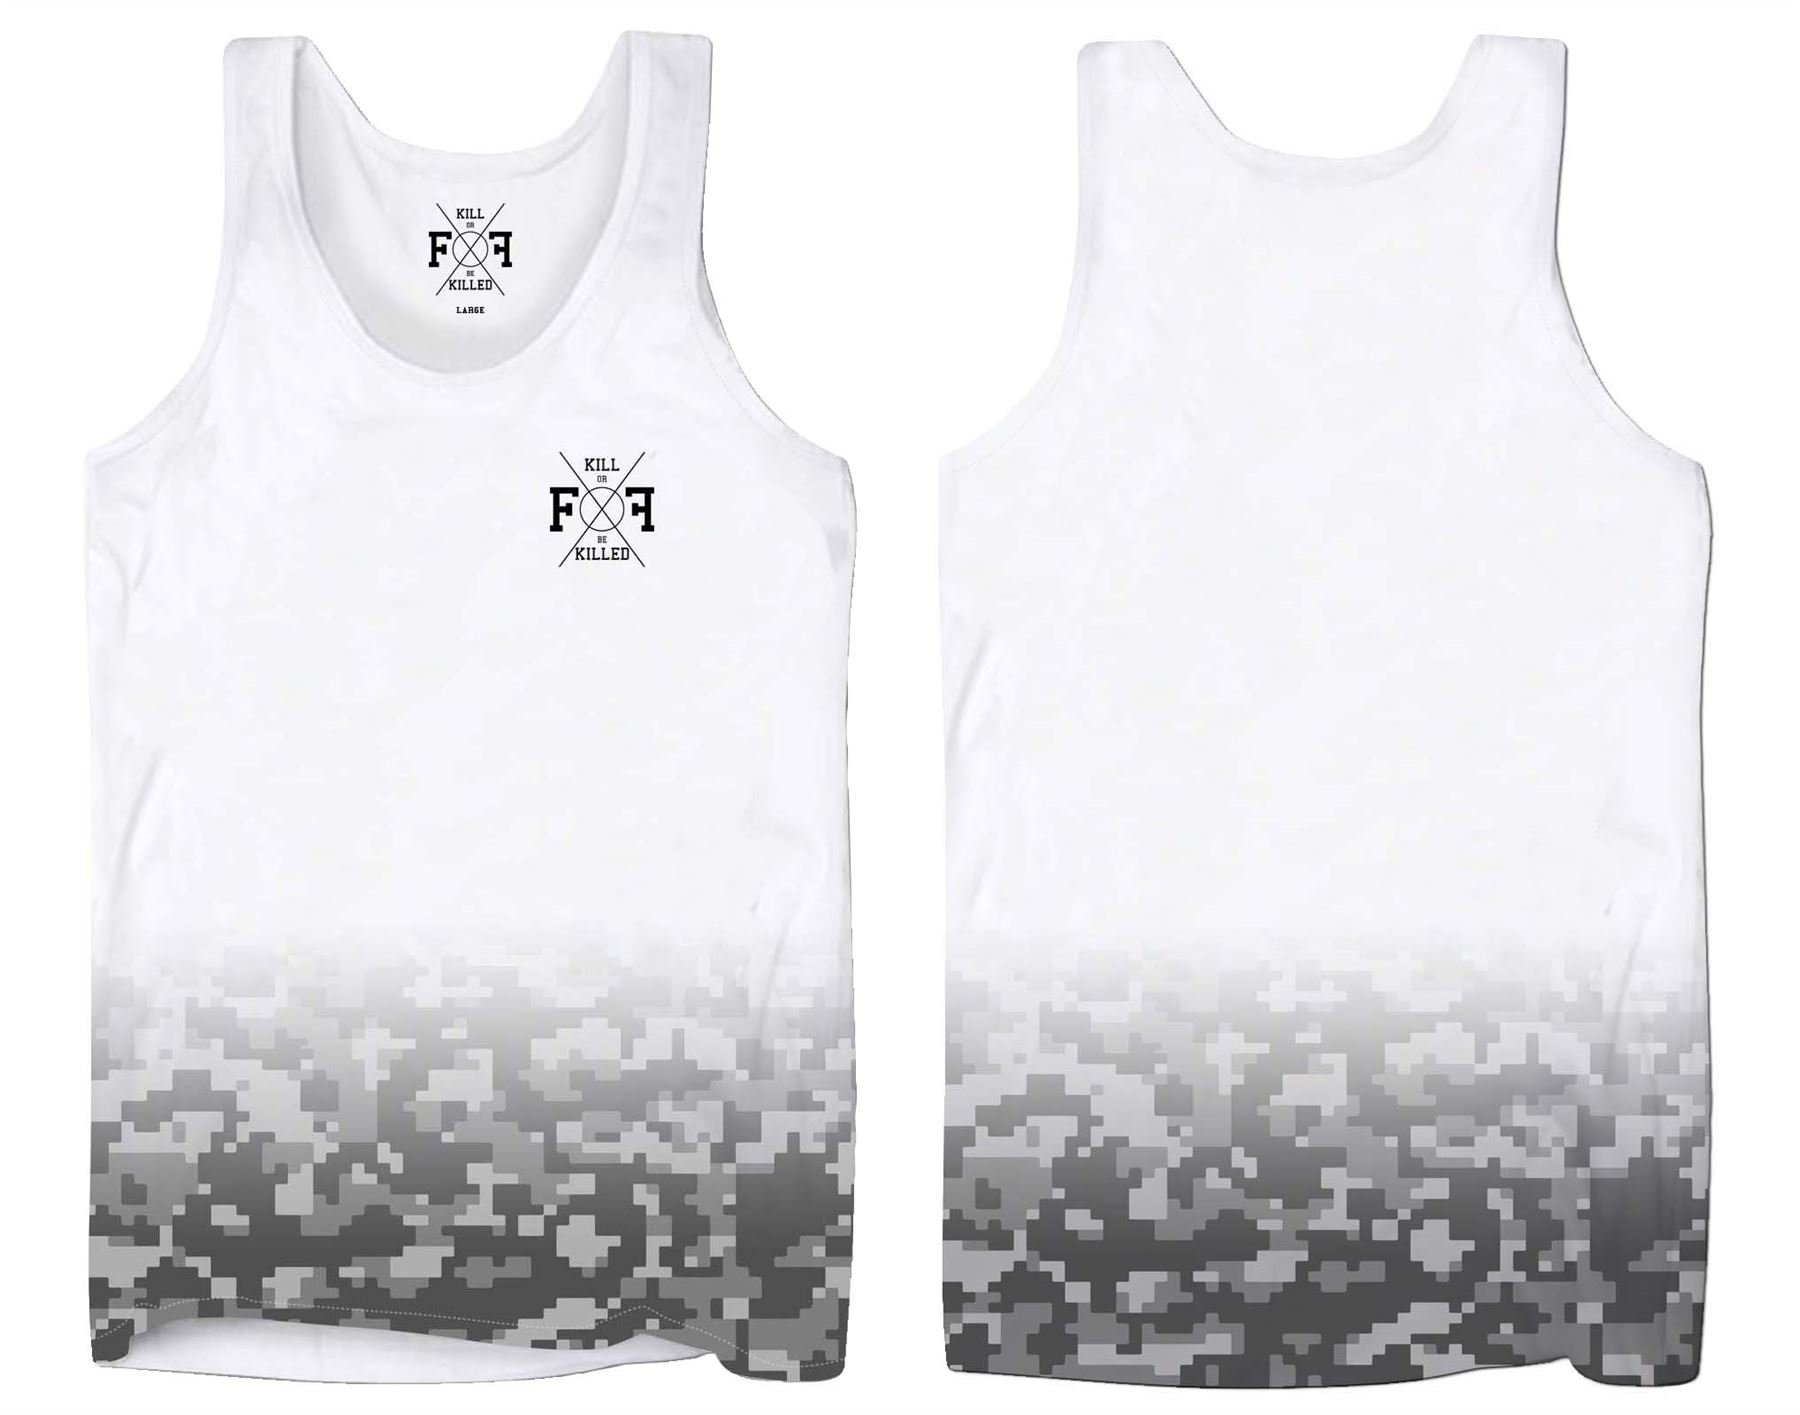 Holiday Vests for Men Digital Camo Summer Clothing Tank Tops Gym Beach Wear